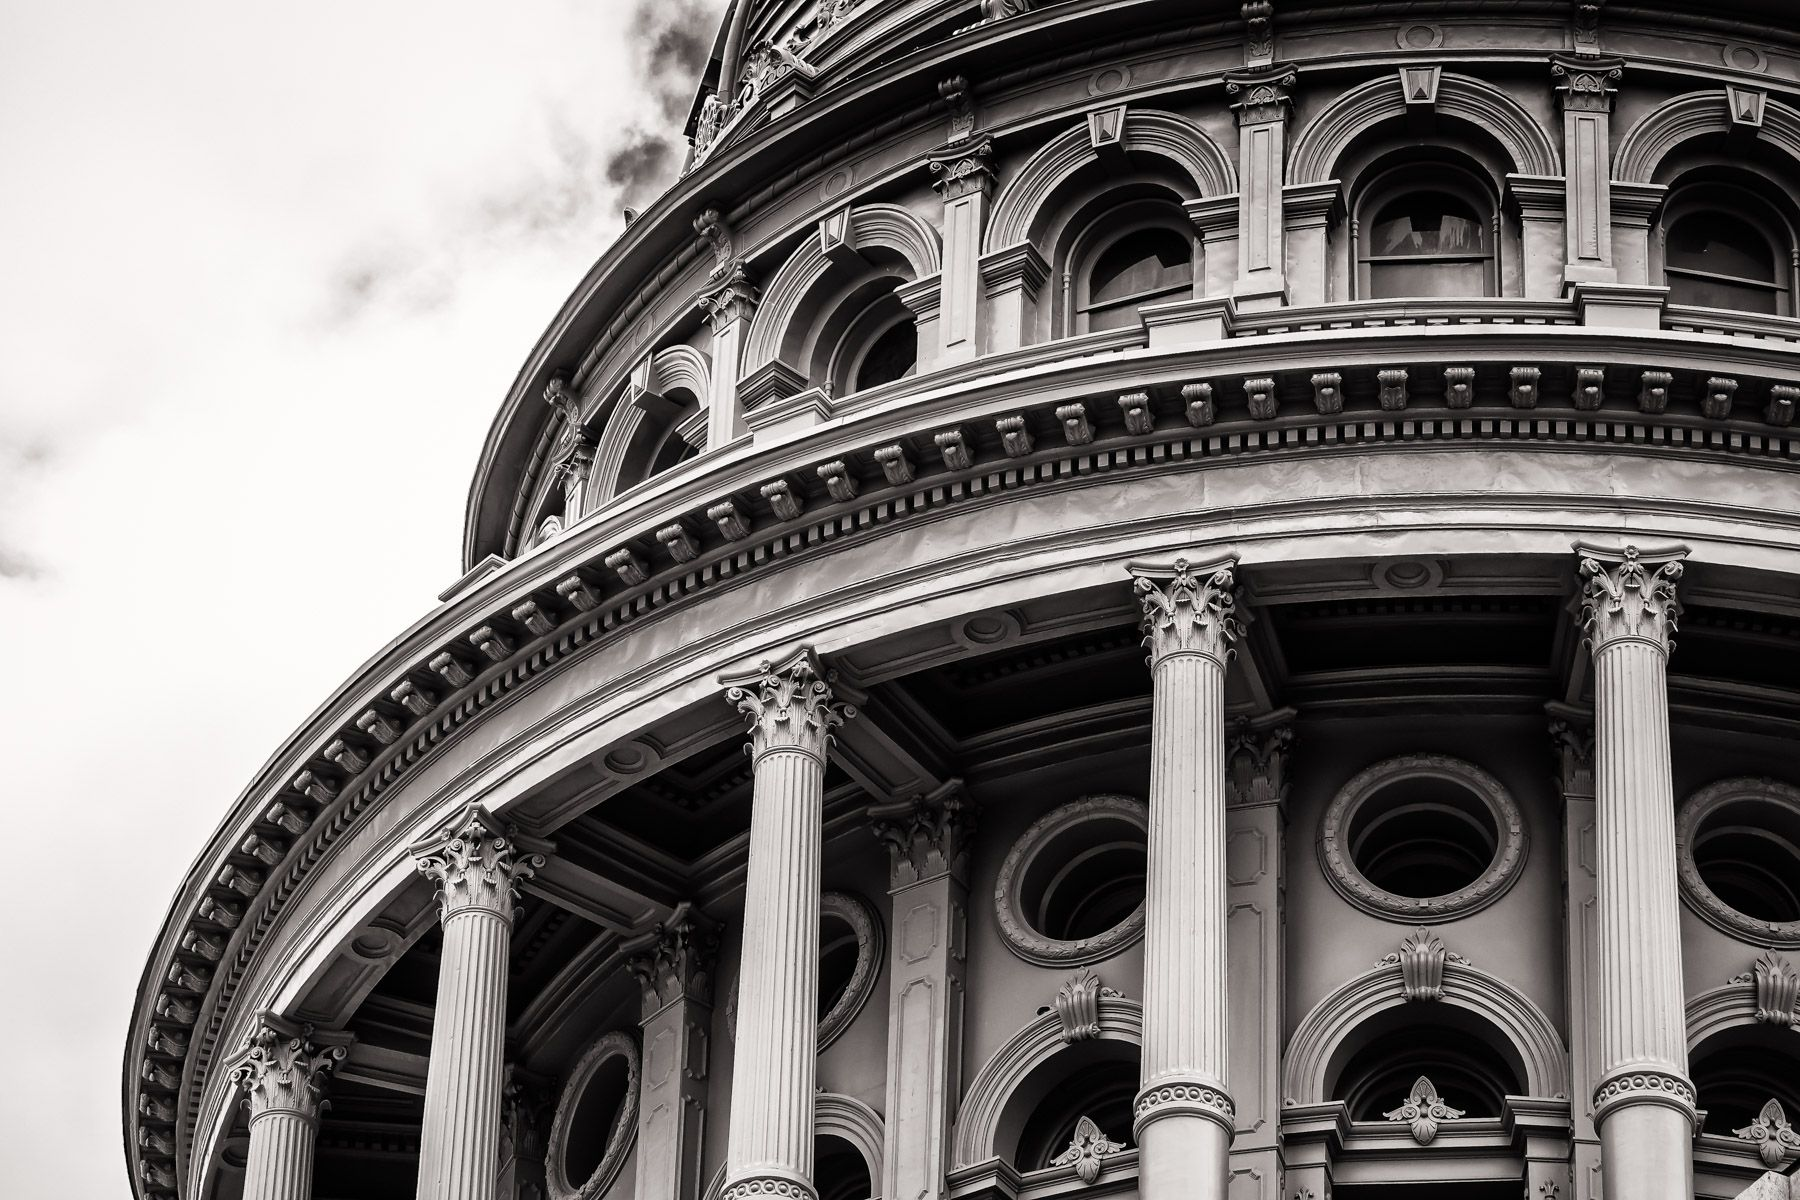 architectural detail photography. Architectural Detail Of The Rotunda Texas State Capitol, Austin. Photography